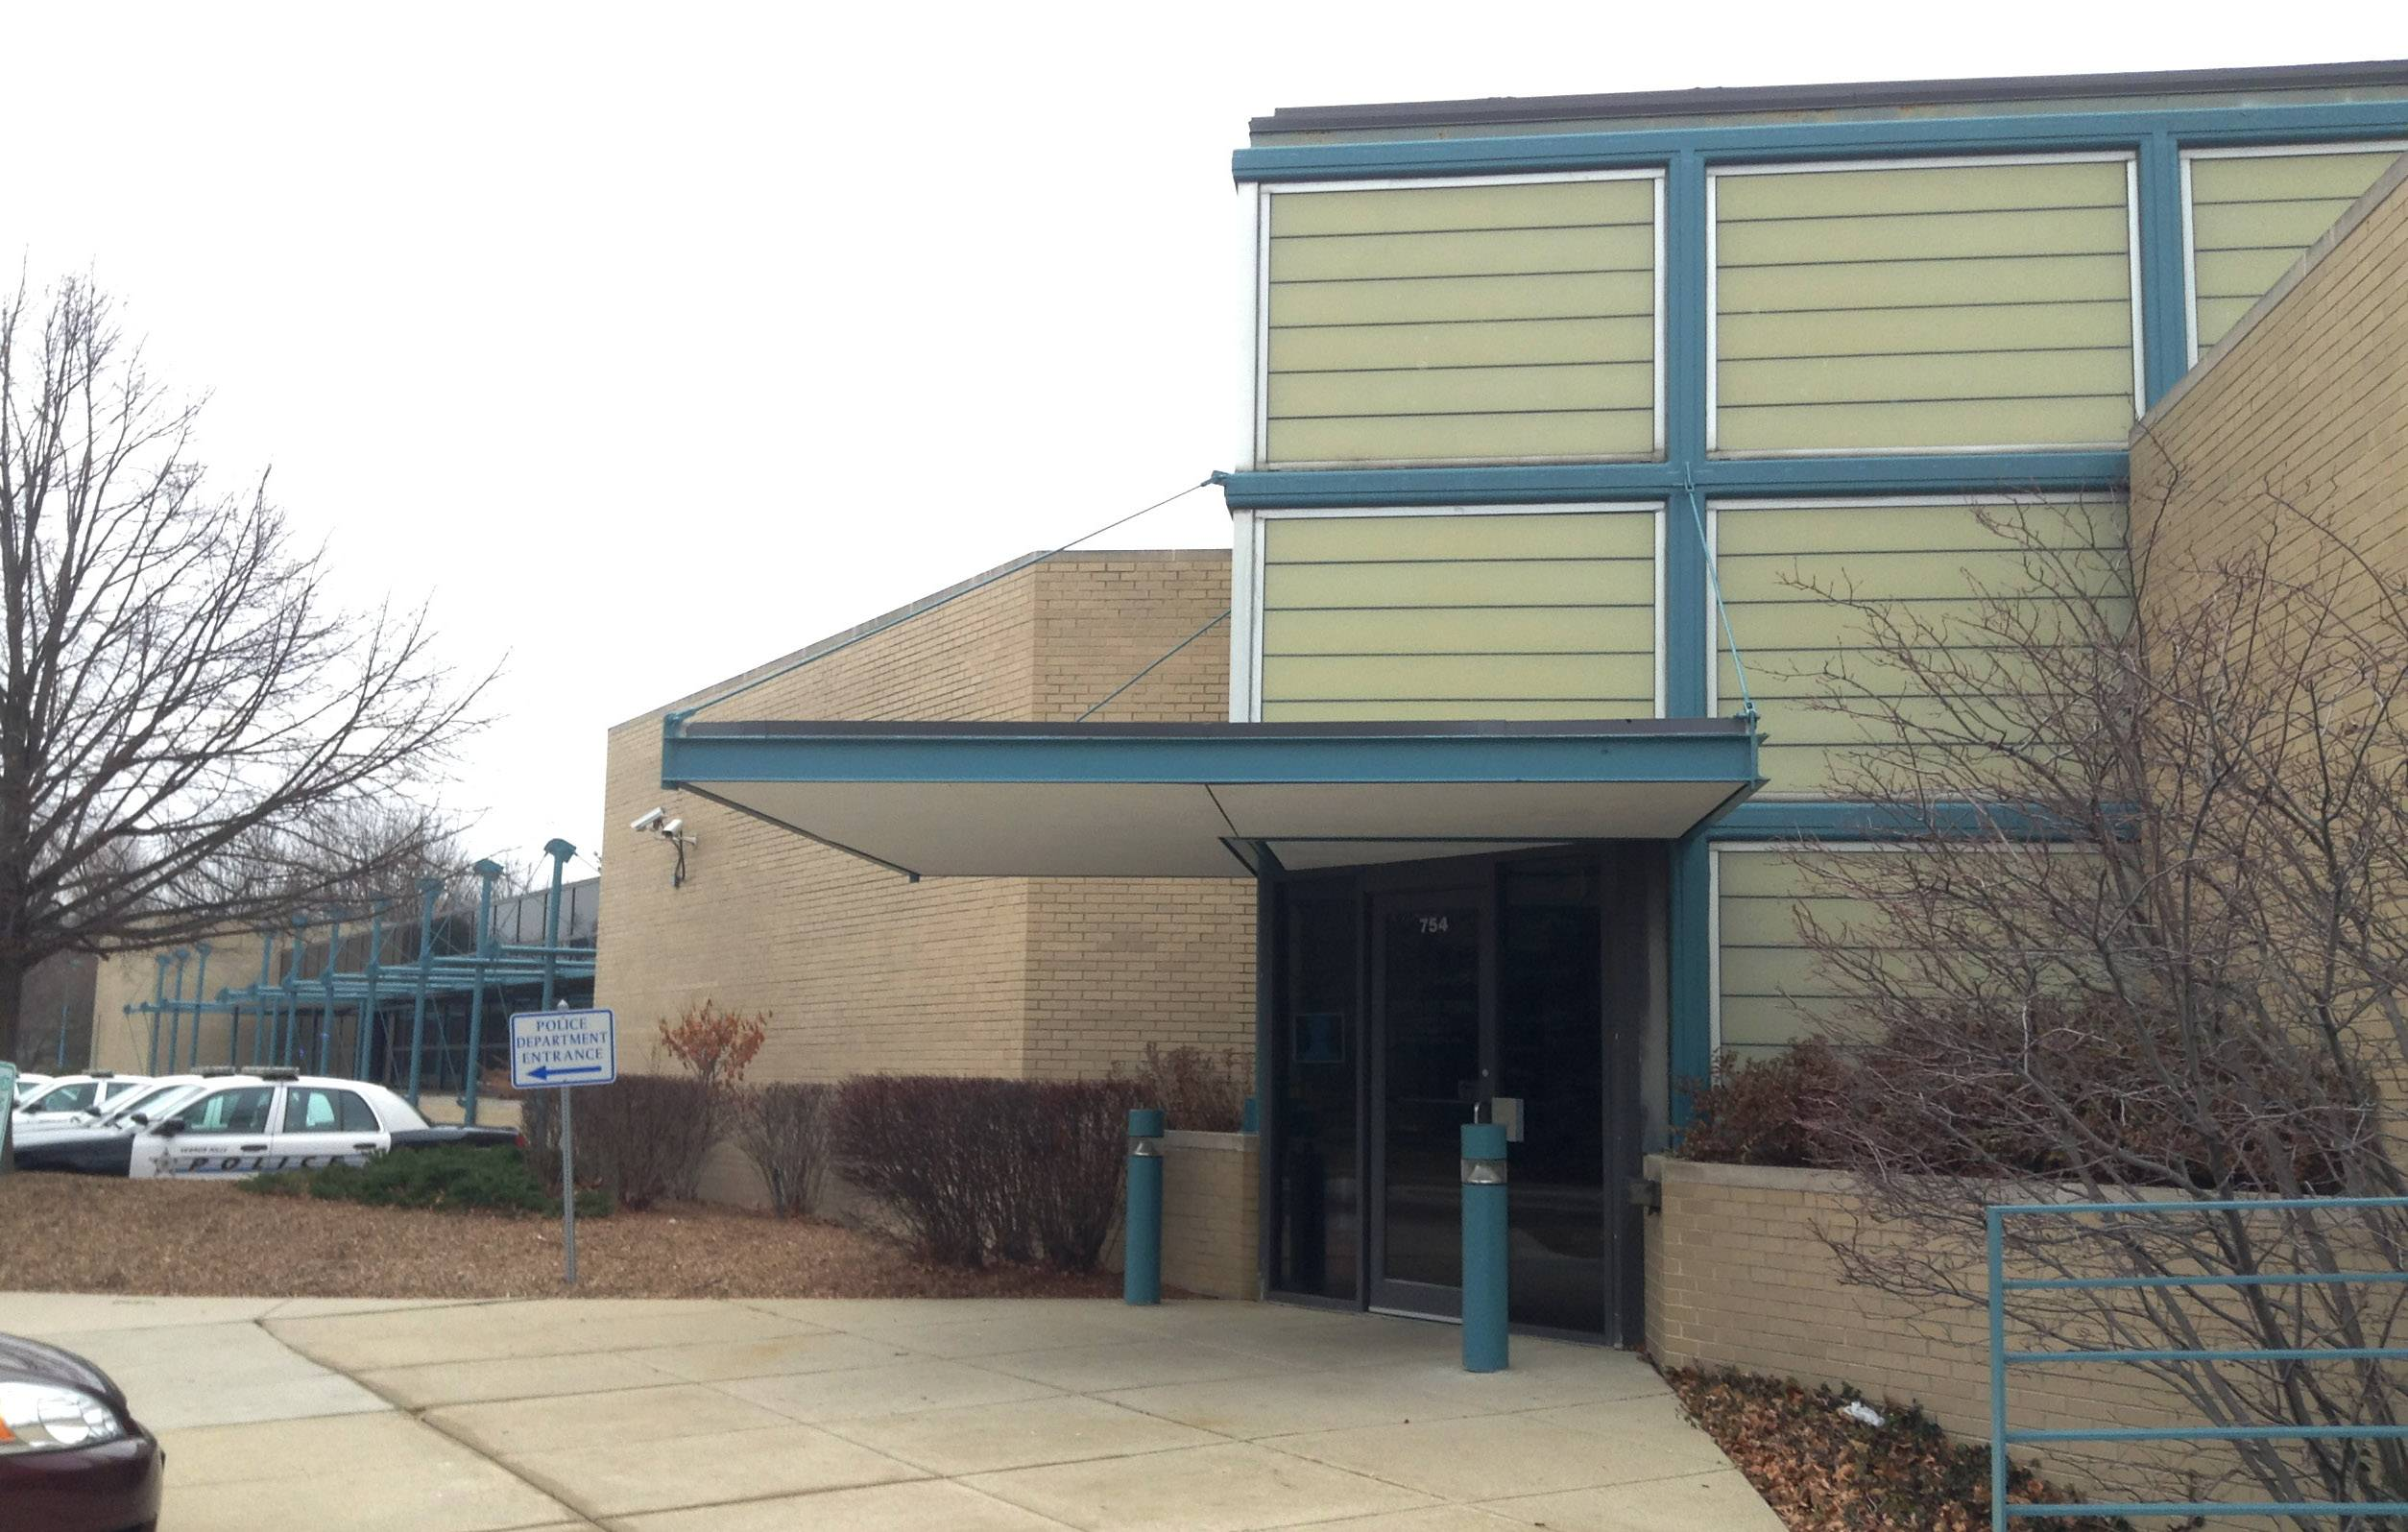 Vernon Hills' good bond rating helping fund police station